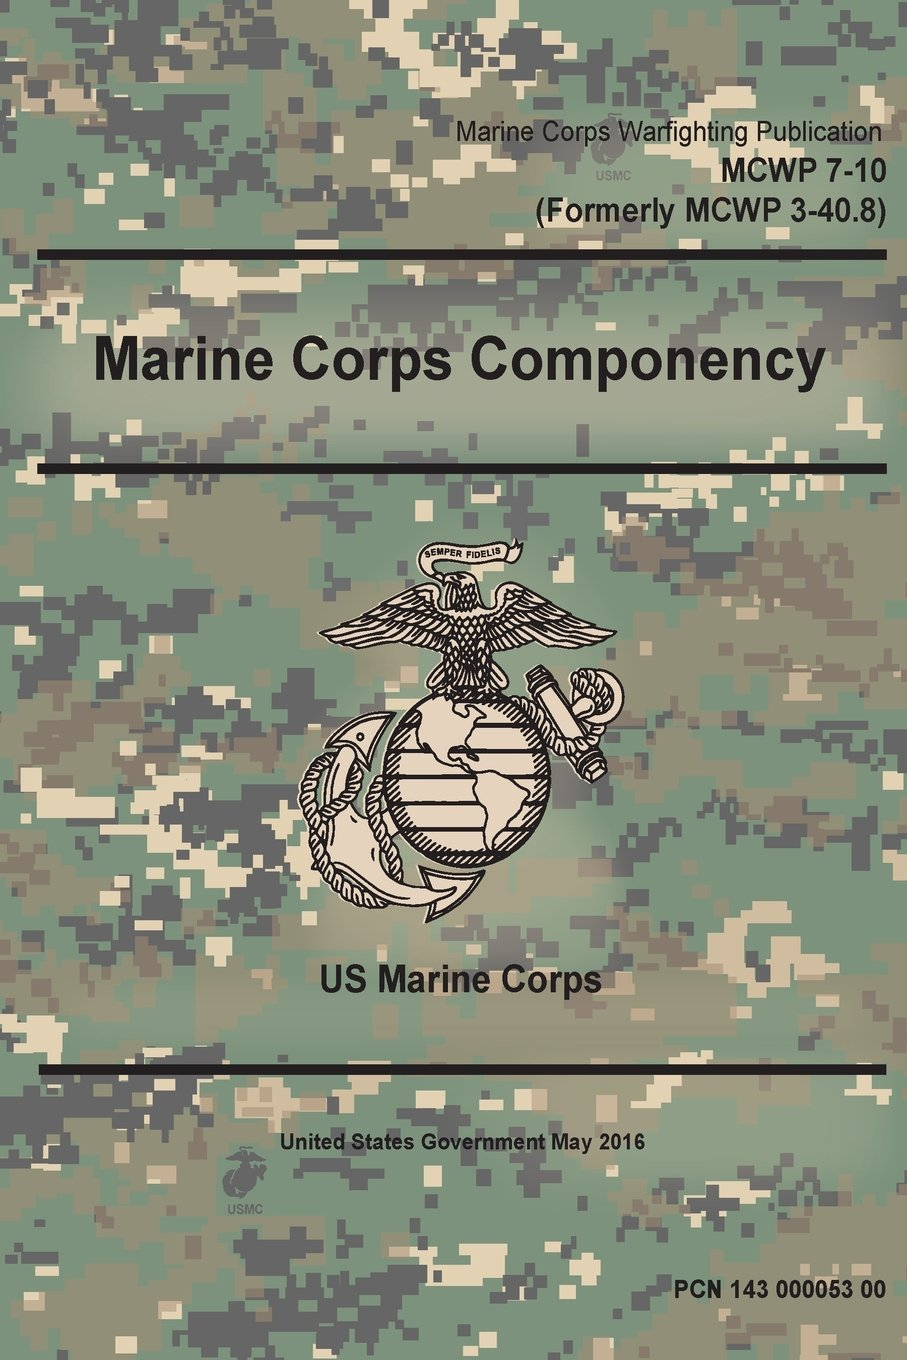 Read Online Marine Corps Warfighting Publication MCWP 7-10 (Formerly MCWP 3-40.8) Marine Corps Componency May 2016 ebook